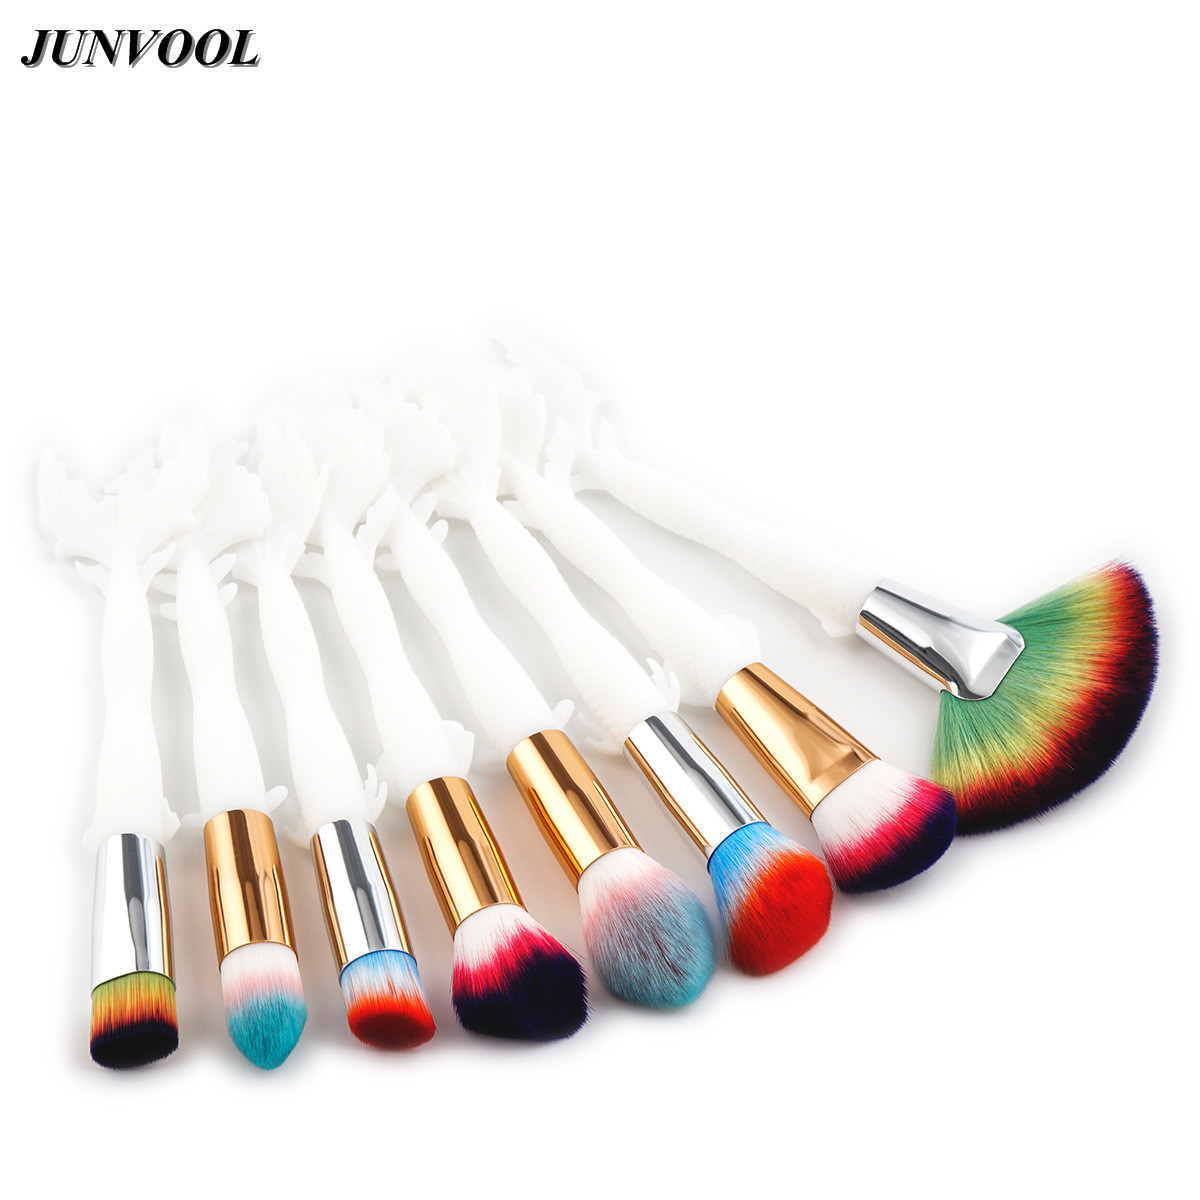 Fish Tail Professional Makeup Brushes Milky Handle Eye Shadow Eyebrow Lip Eye Make Up Large Brush Comestic Tool Color Nylon Hair c18 professional makeup brushes squirrel hair sokouhou goat hair eye shadow brush white black handle cosmetic tool make up brush